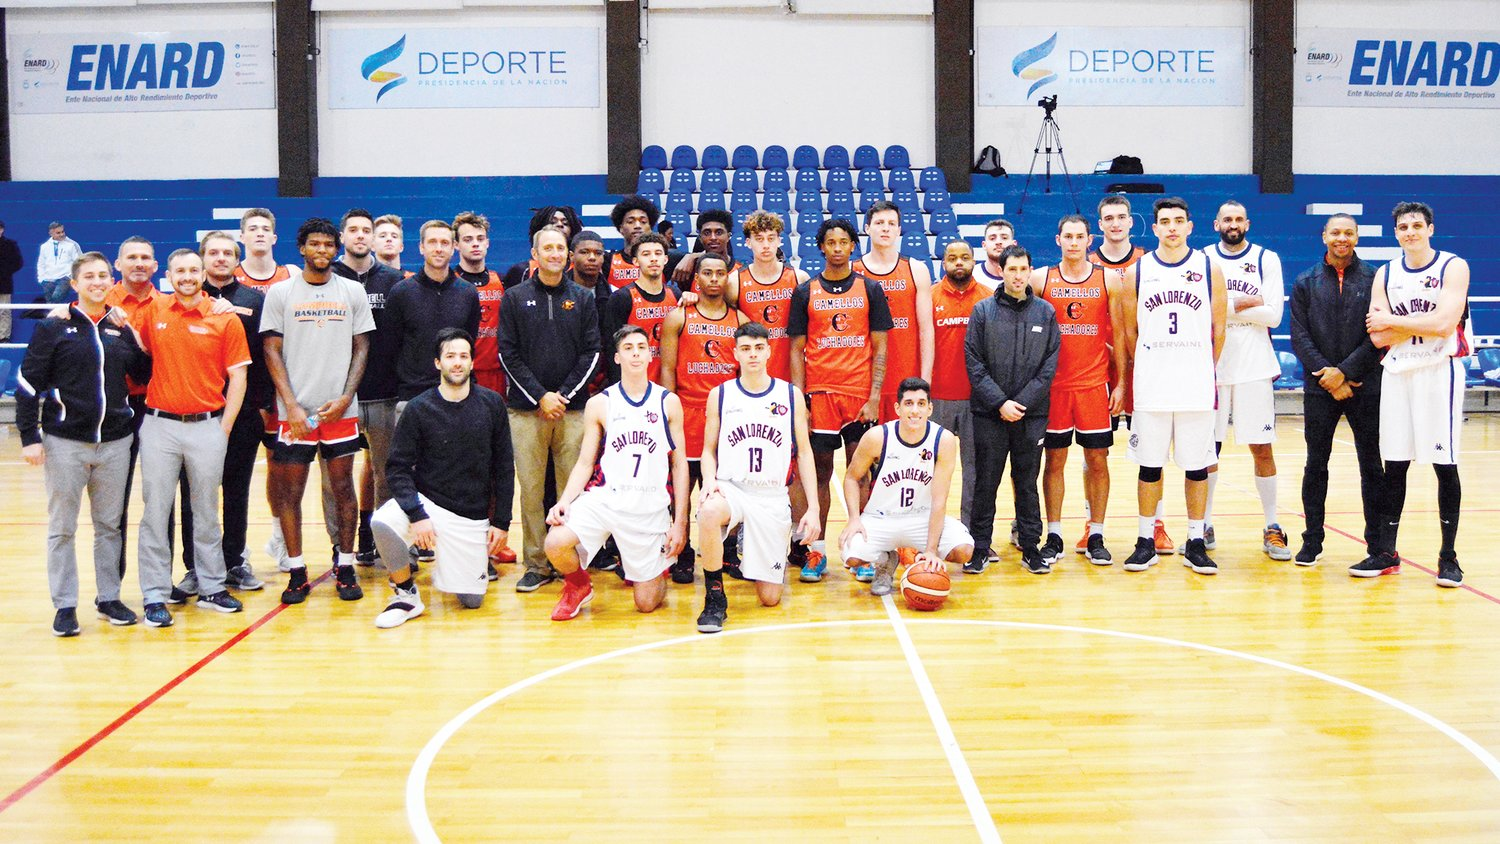 Campbell's men's basketball team gathers with players from Buenos Aires after the opening game of the Camels' South American tour on Monday.